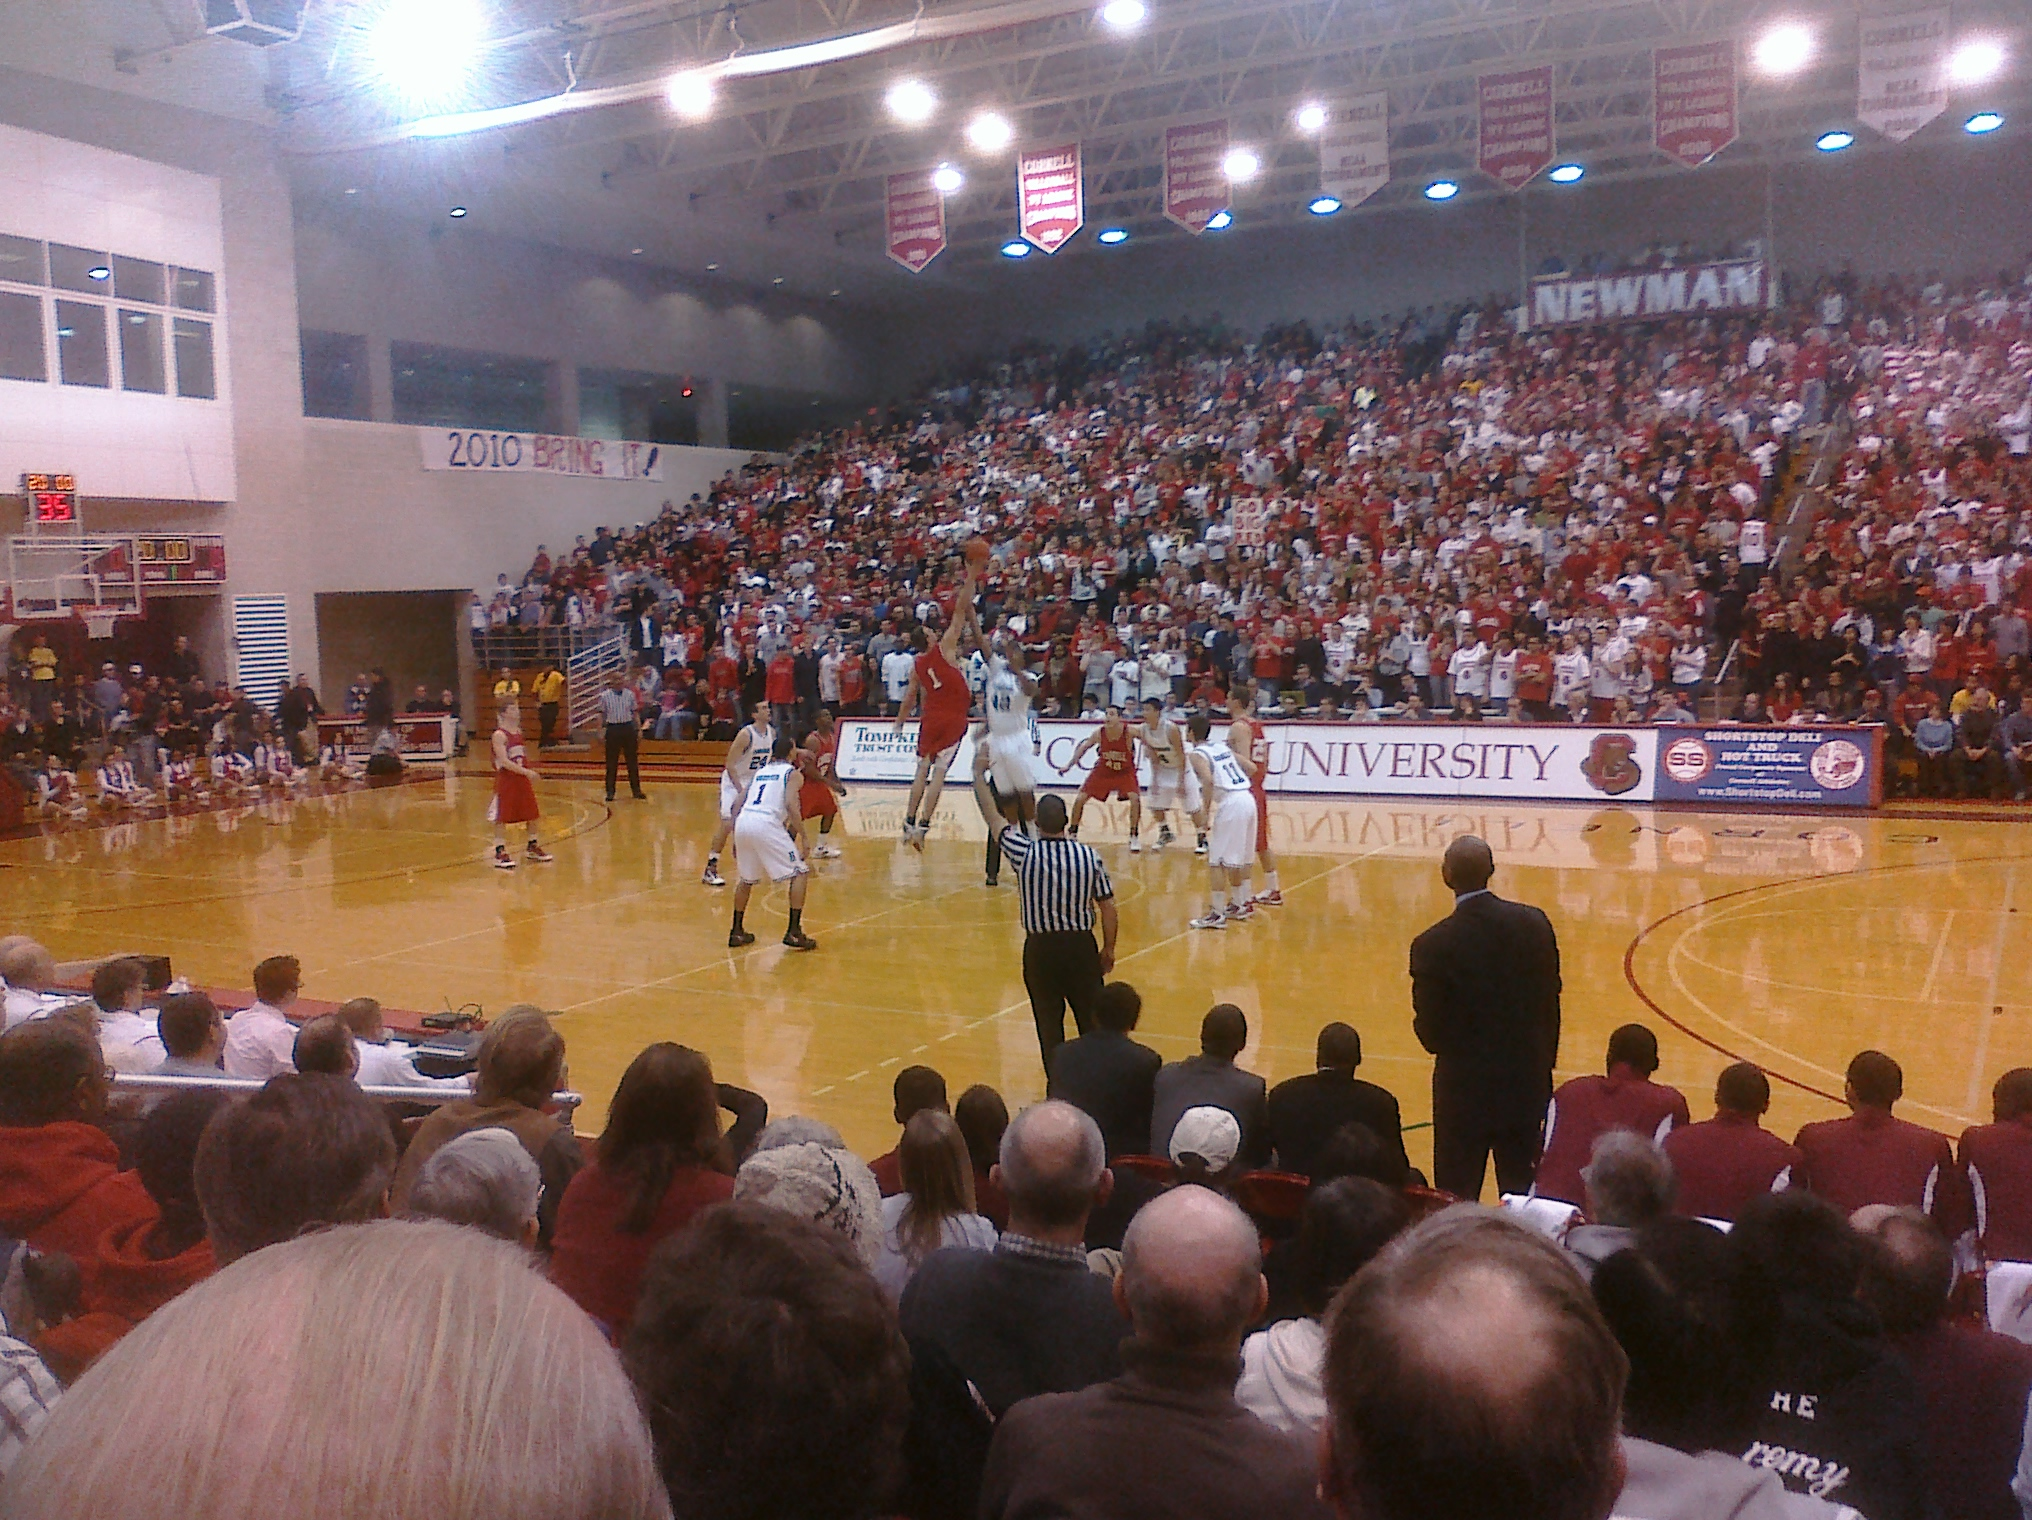 Harvard-Cornell tipoff. Can we have a do-over?